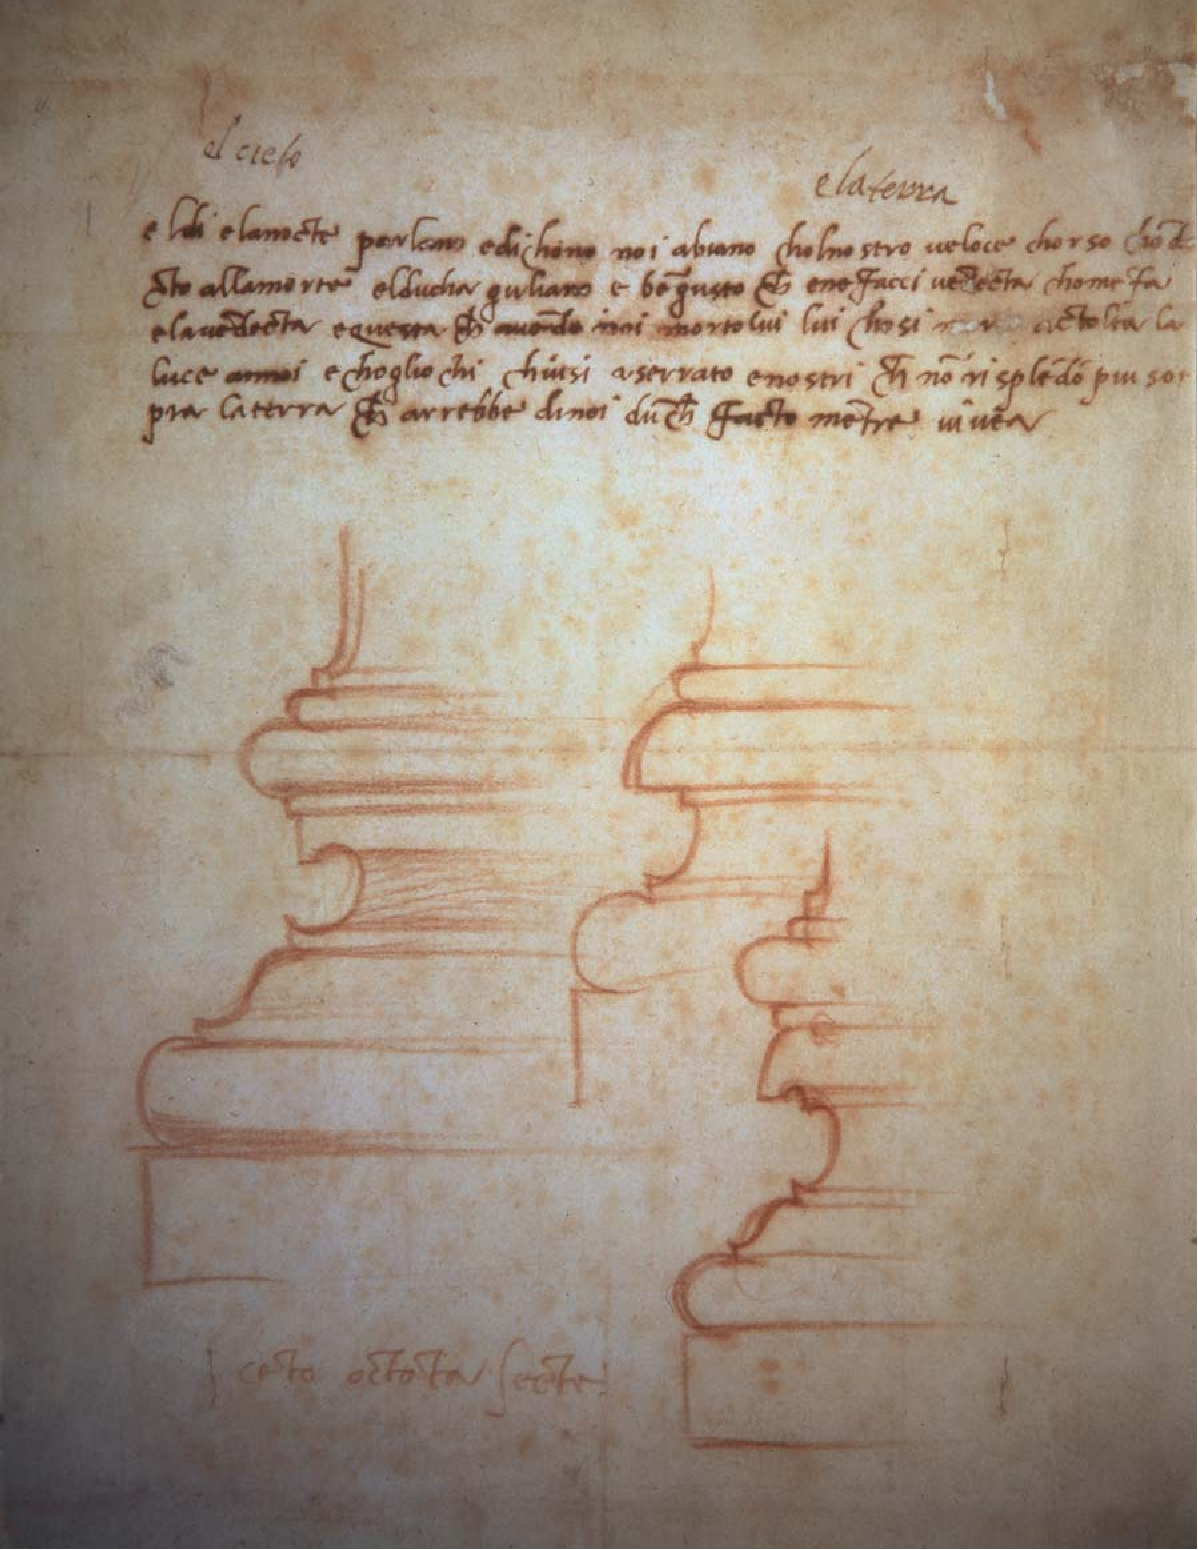 Figure 8 10 from Architects' drawings : a selection of